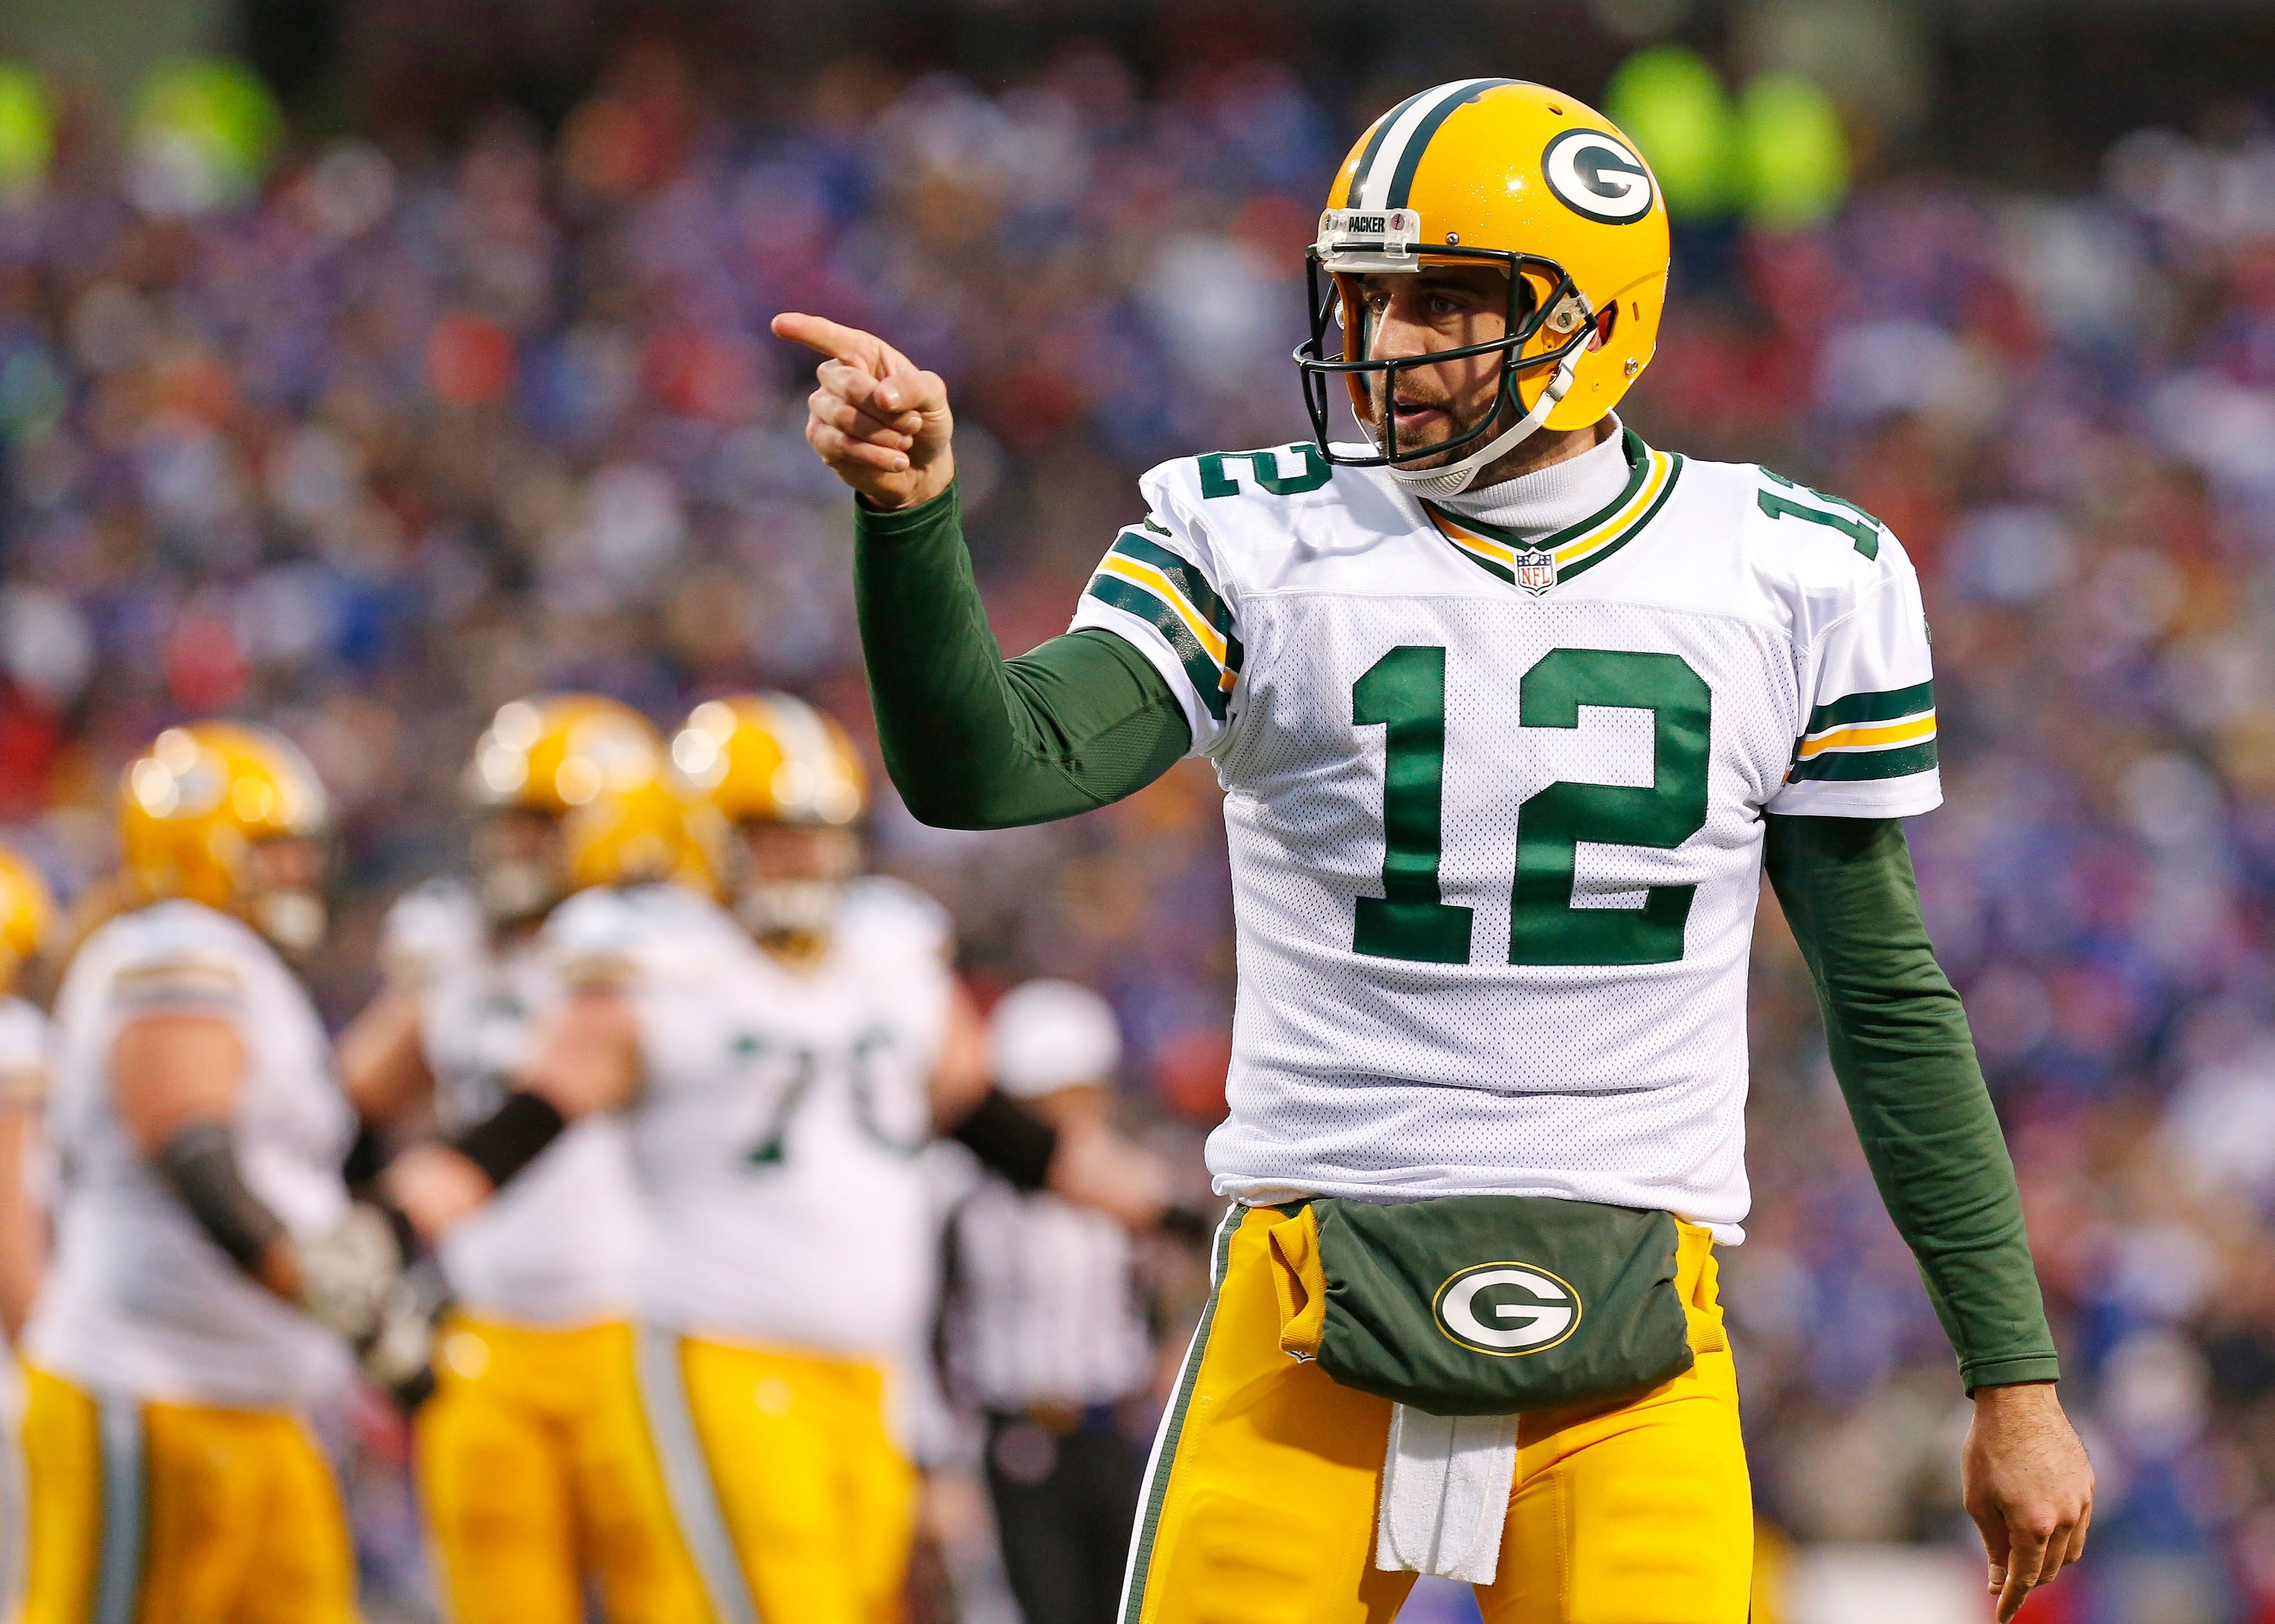 Aaron Rodgers Free Hd Wallpapers Aaron Rodgers Nfl Nfl Betting